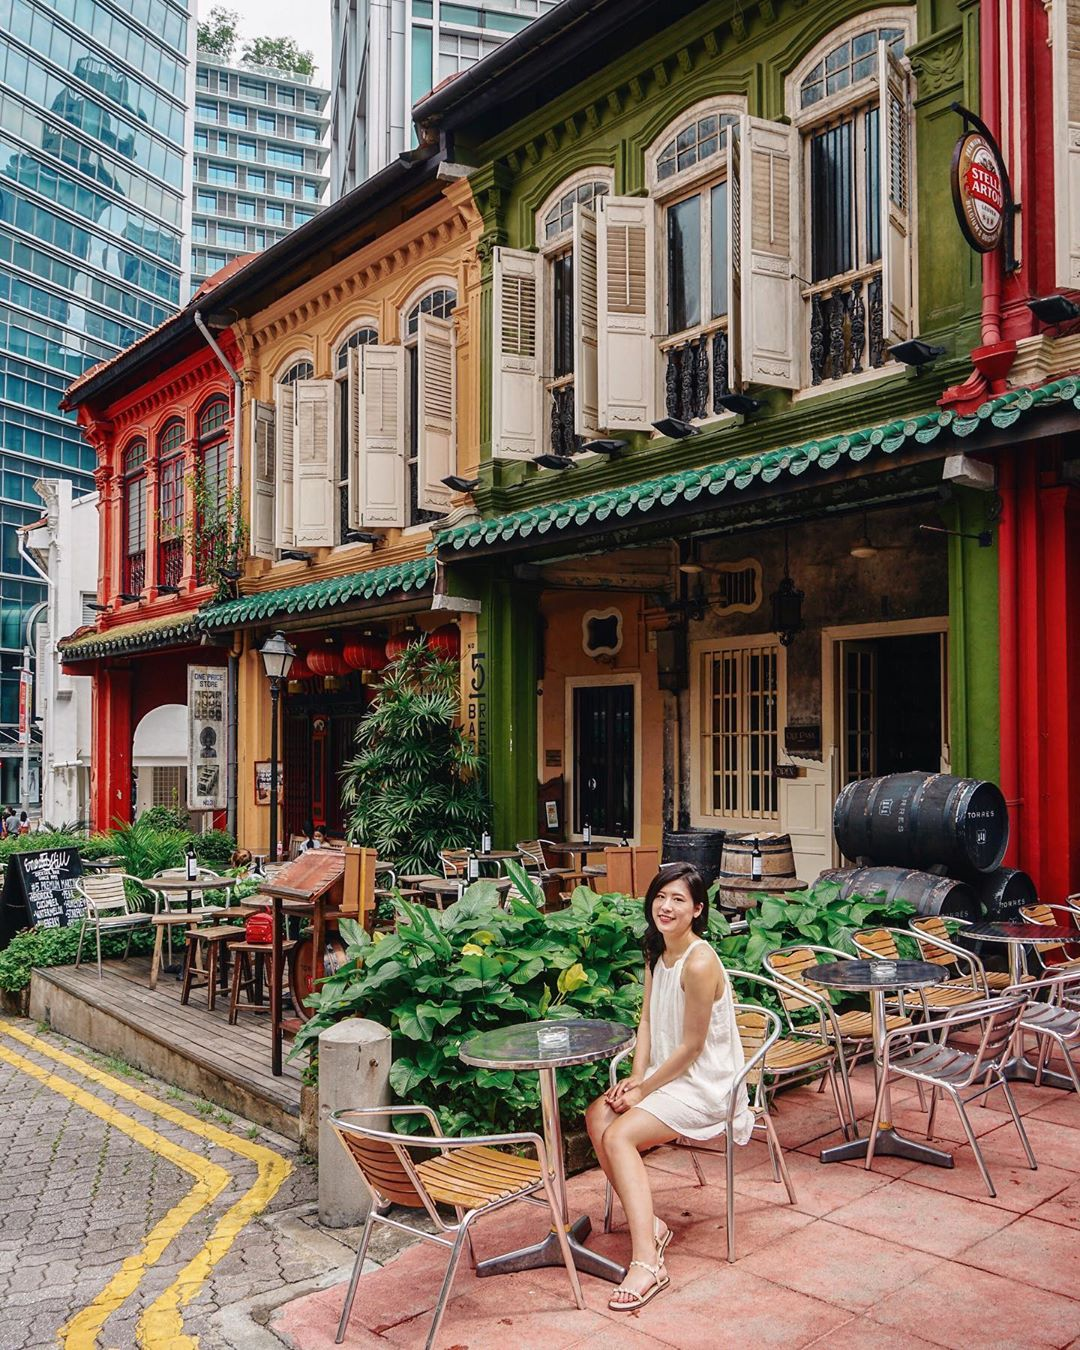 Emerald Hill streets in Singapore - Singapore itinerary